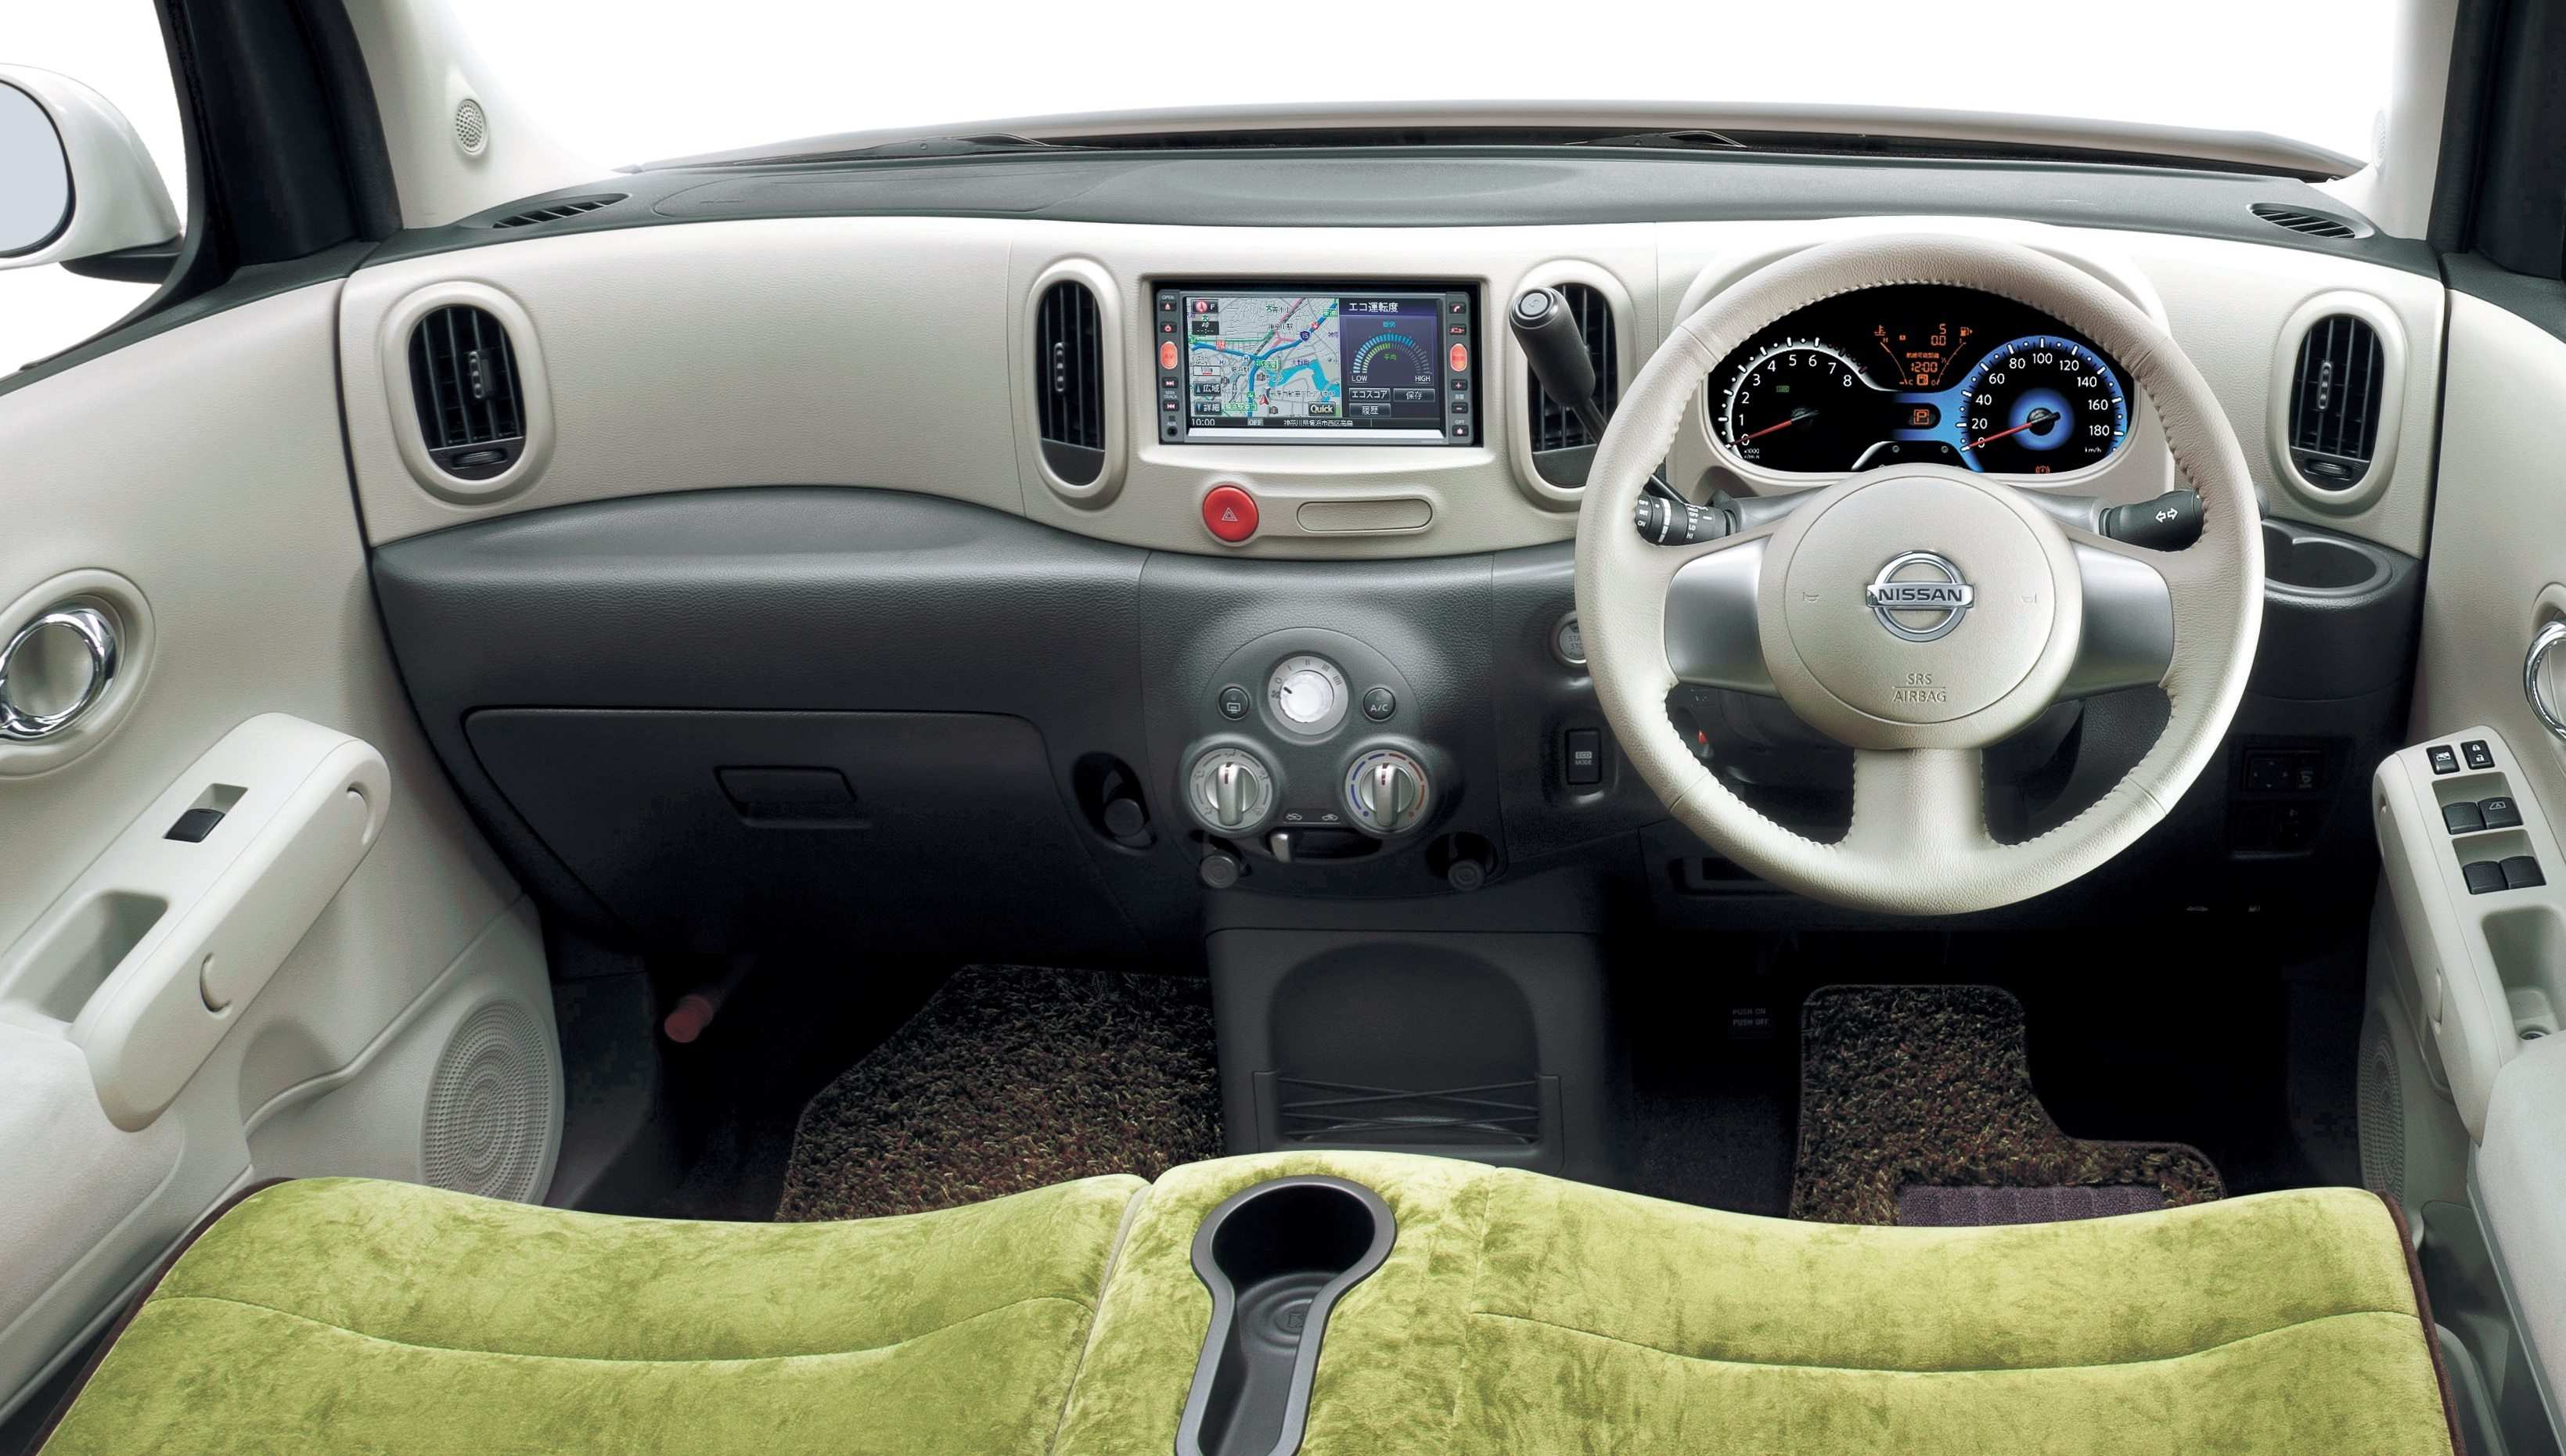 84 The Best Nissan Cube 2019 Reviews